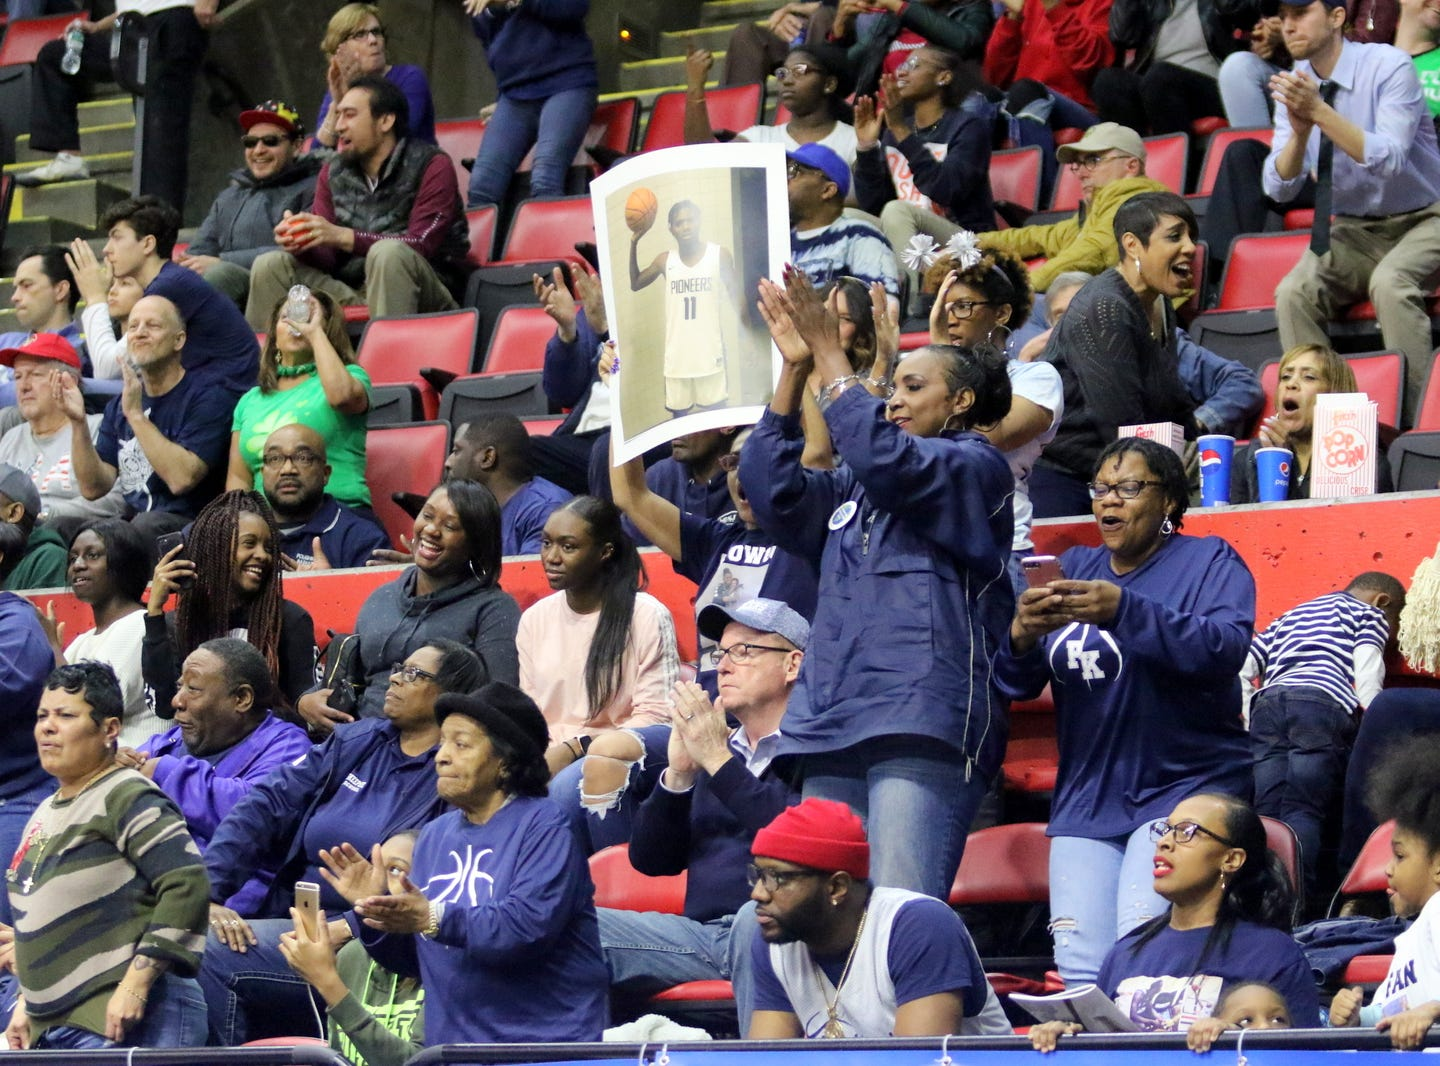 Poughkeepsie fans cheer their team during a win over Manhasset in a during a Class A boys basketball state semifinal March 15, 2019 at Floyd L. Maines Veterans Memorial Arena in Binghamton.